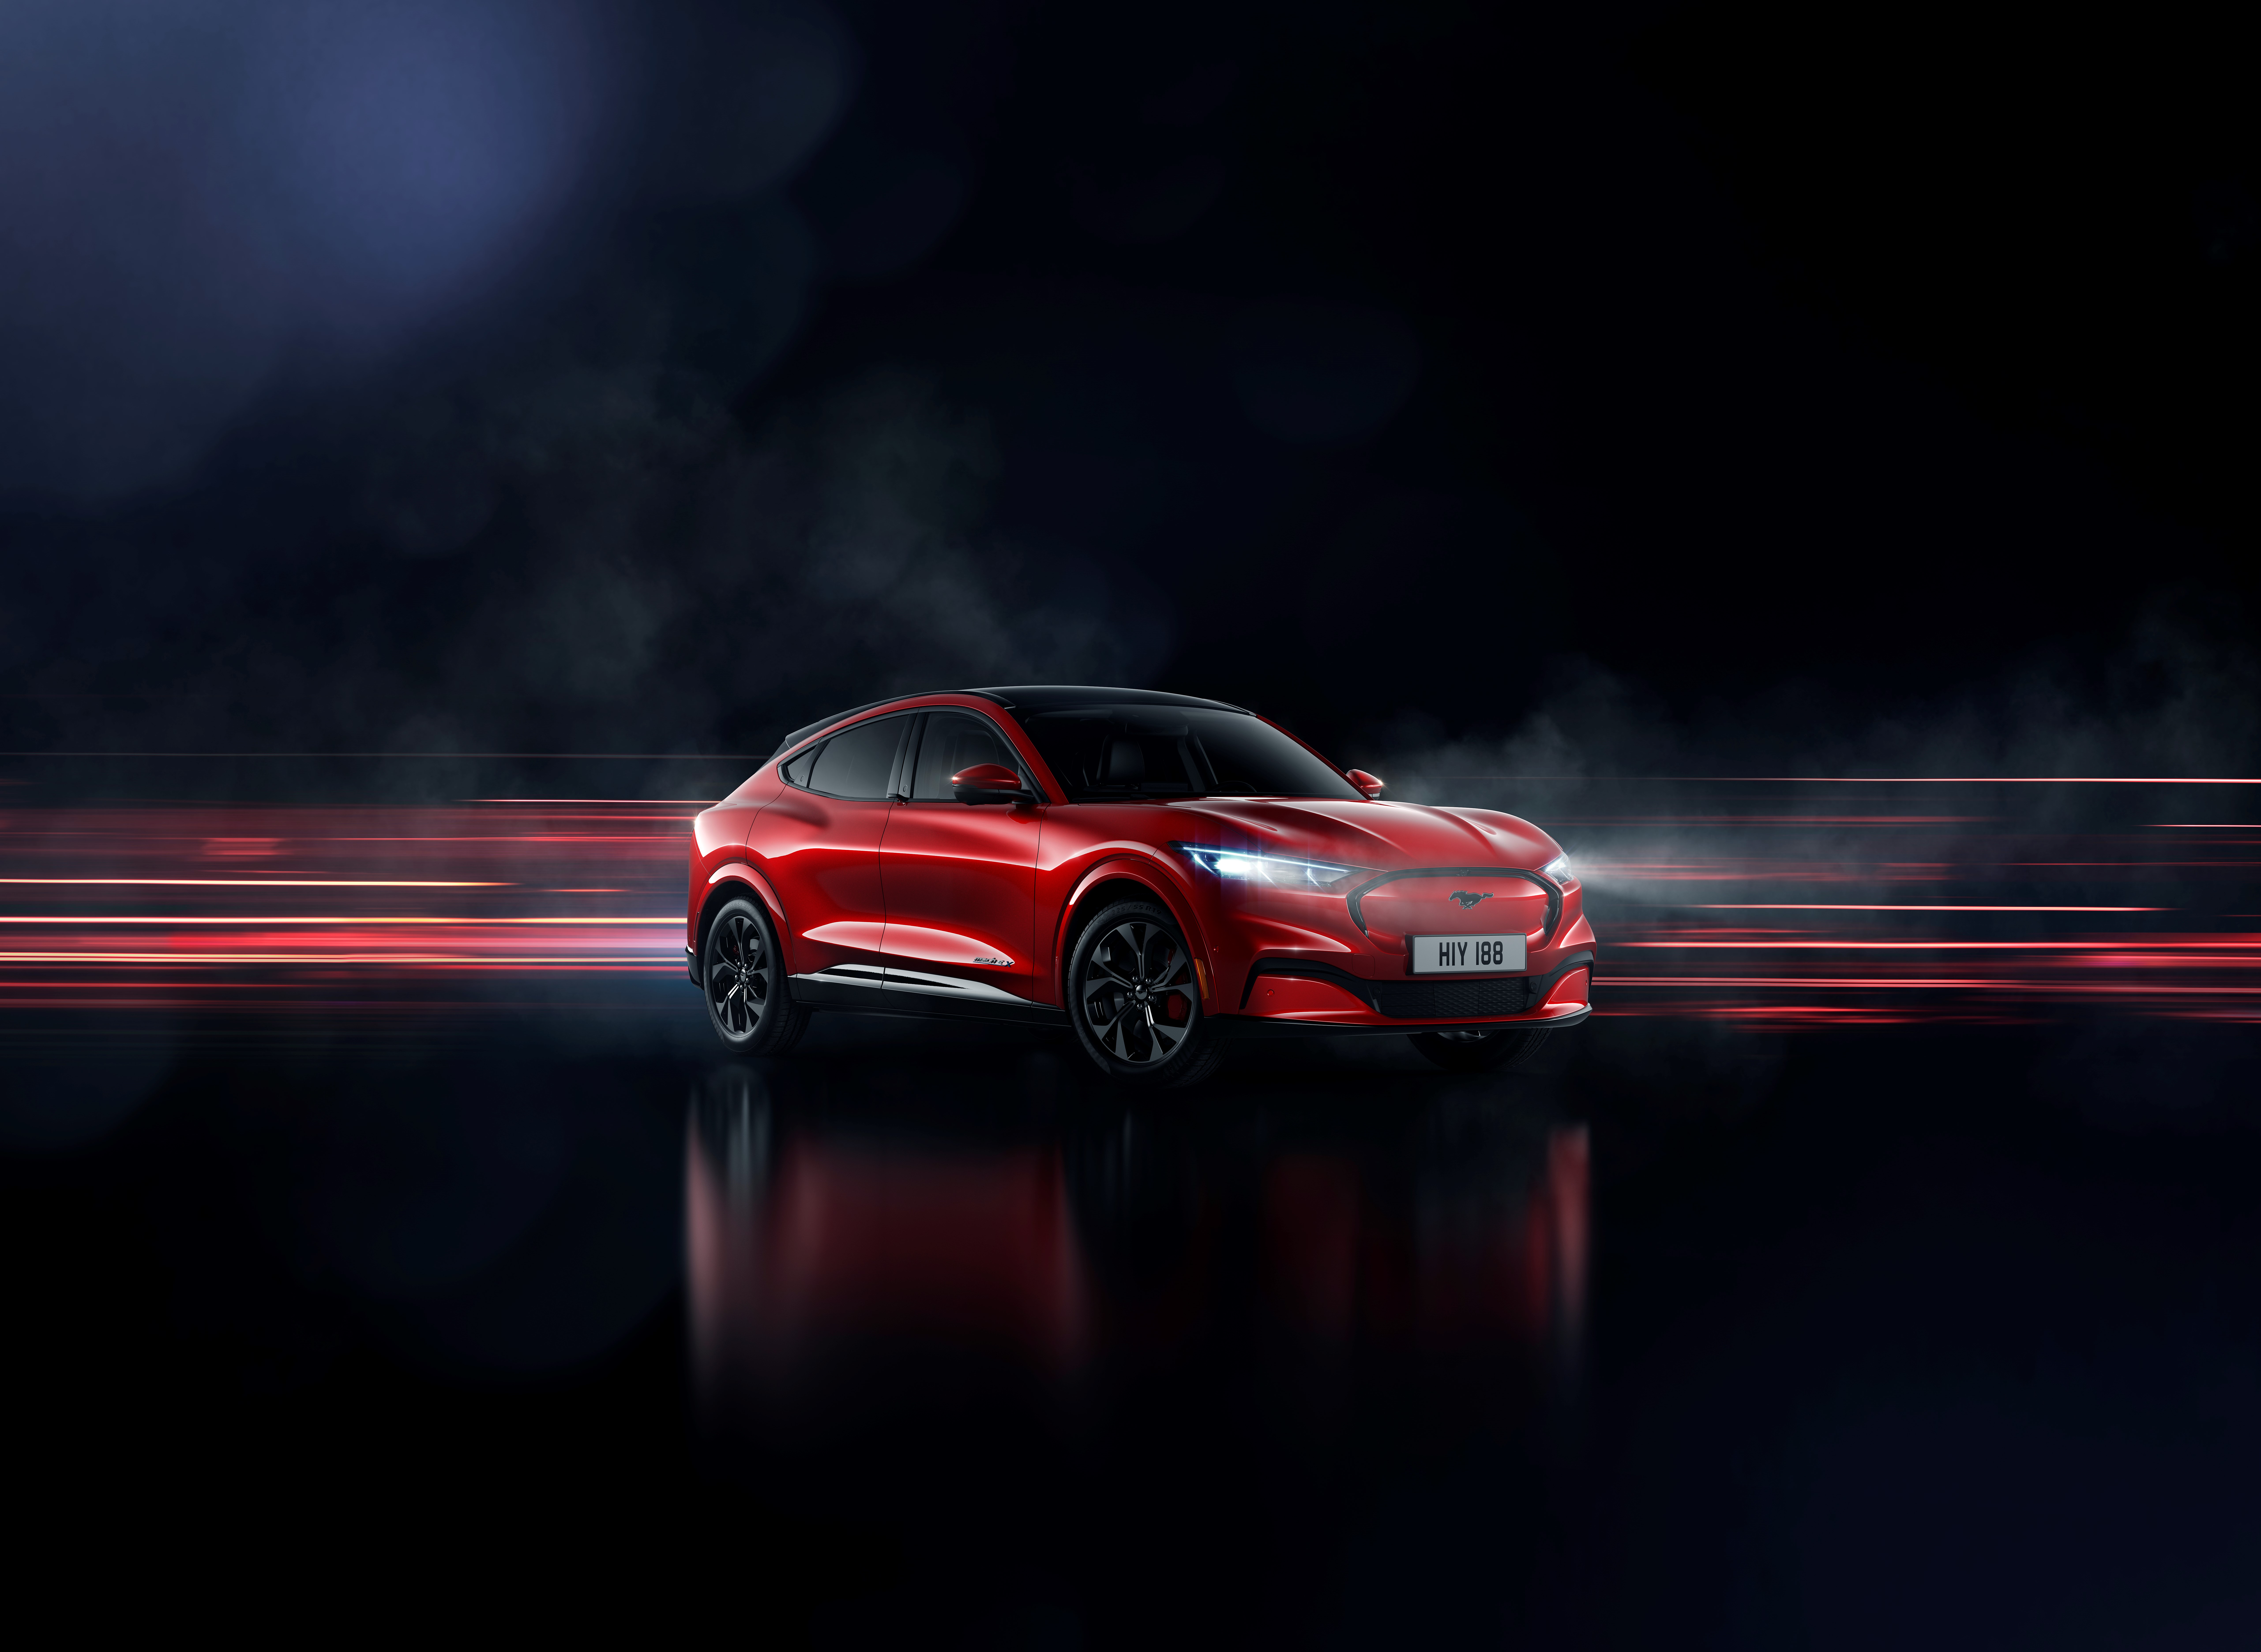 Ford Mustang Mach-E revealed – electric SUV with up to 439 hp, 839 Nm, 0-100 km/h 3.5 secs, 600 km range Image #1046827